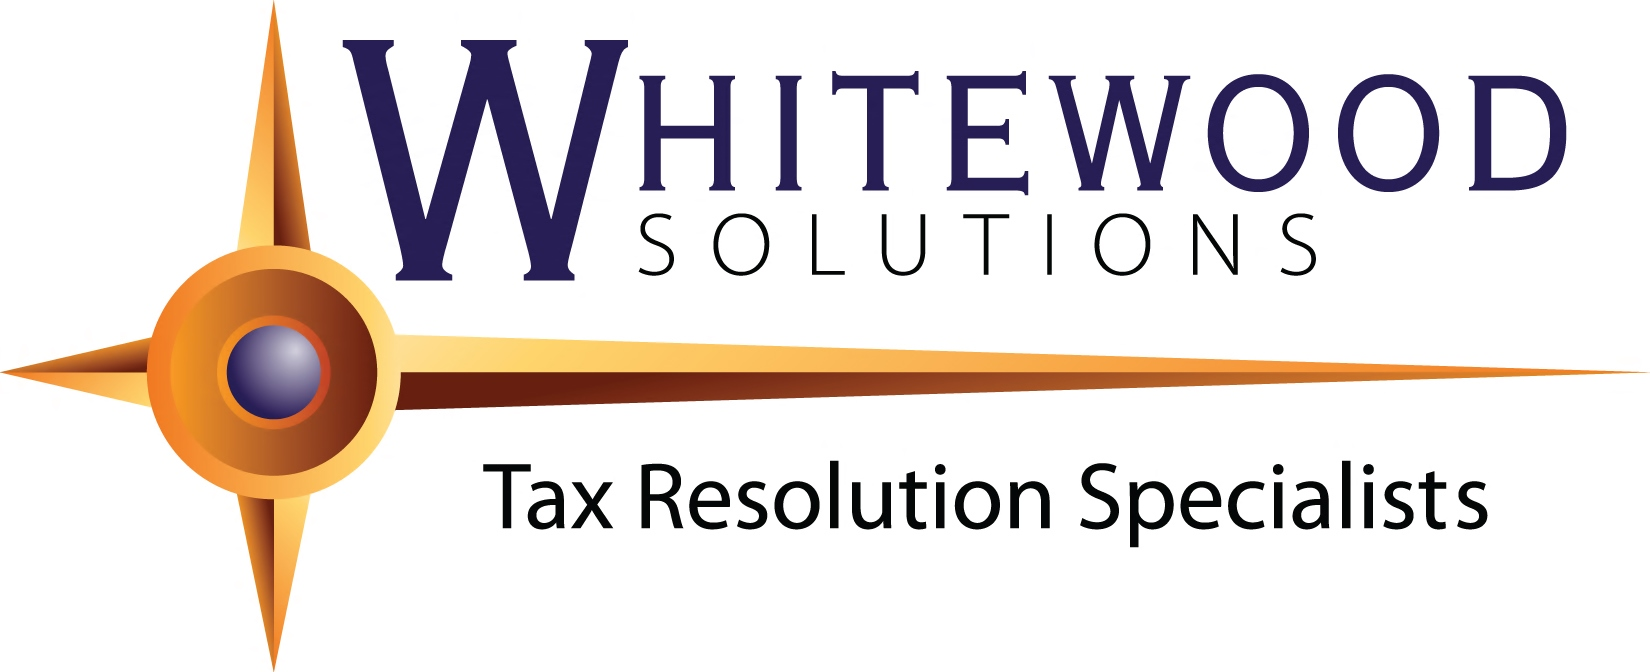 Whitewood Solutions